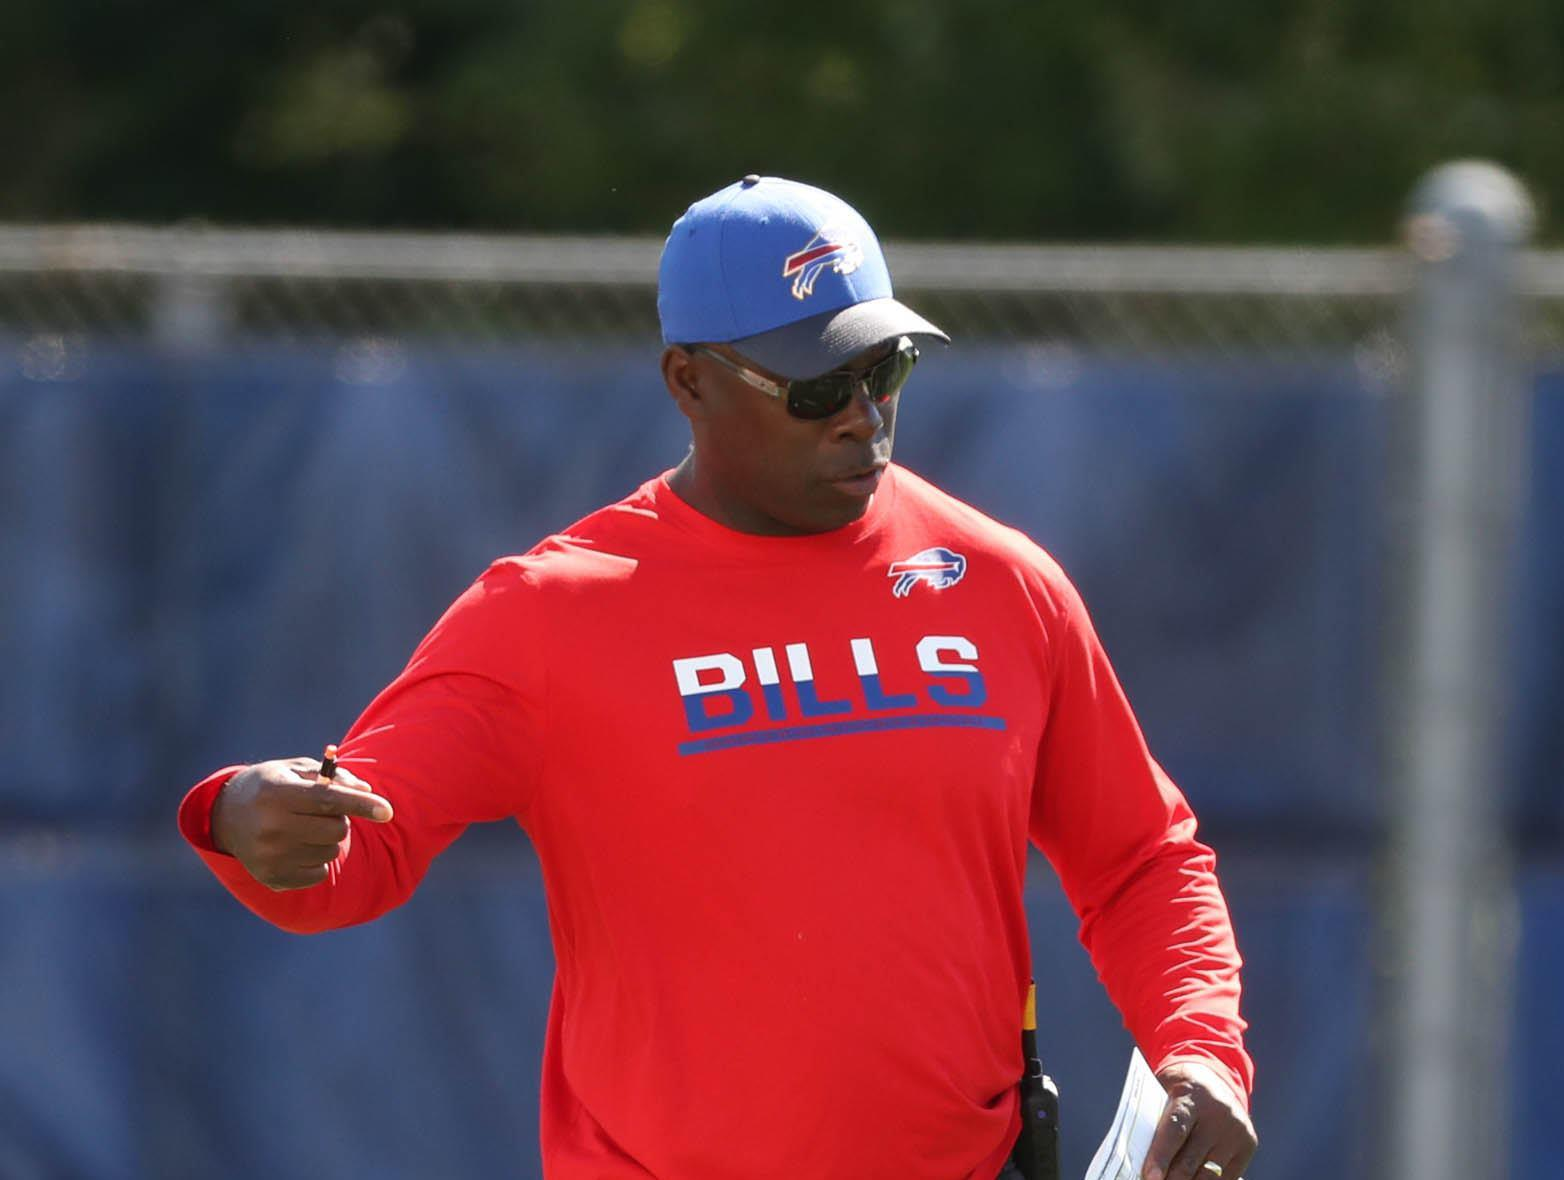 The Bills have responded well to the coaching of offensive coordinator Anthony Lynn. (James P. McCoy/Buffalo News)